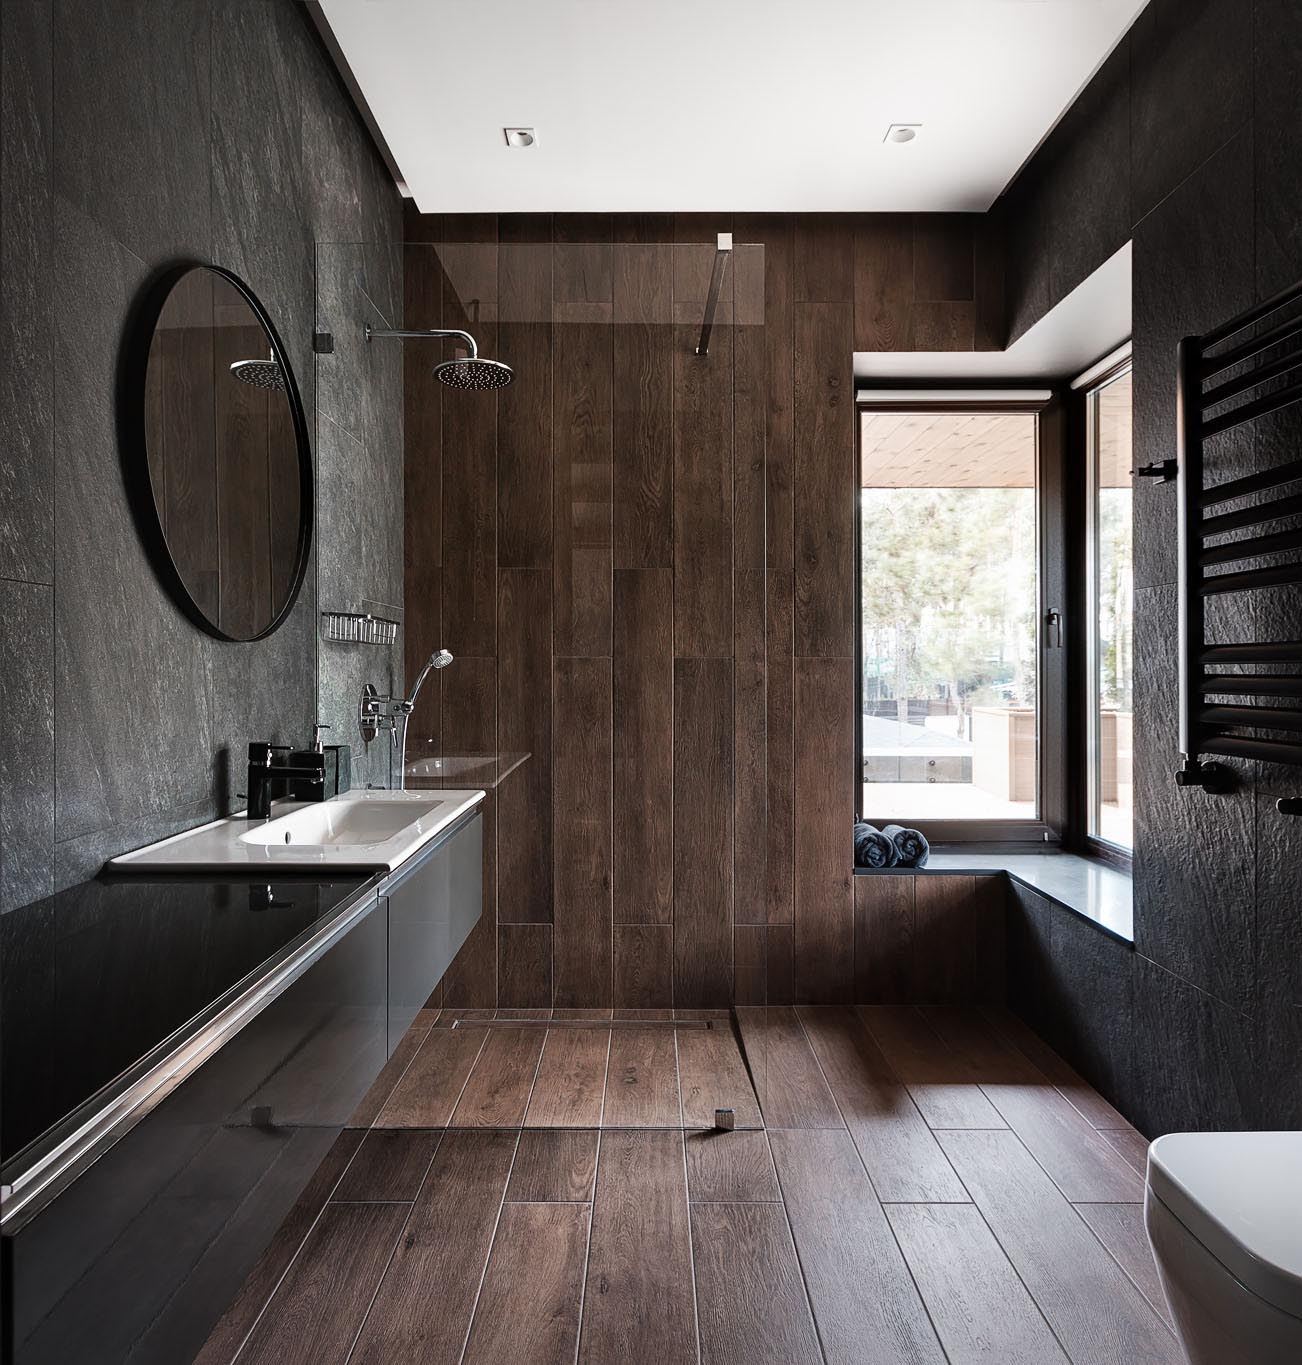 This modern bathroom has a dark material palette with gray walls, wood tiles that travel from the floor to the wall, and a floating black vanity.